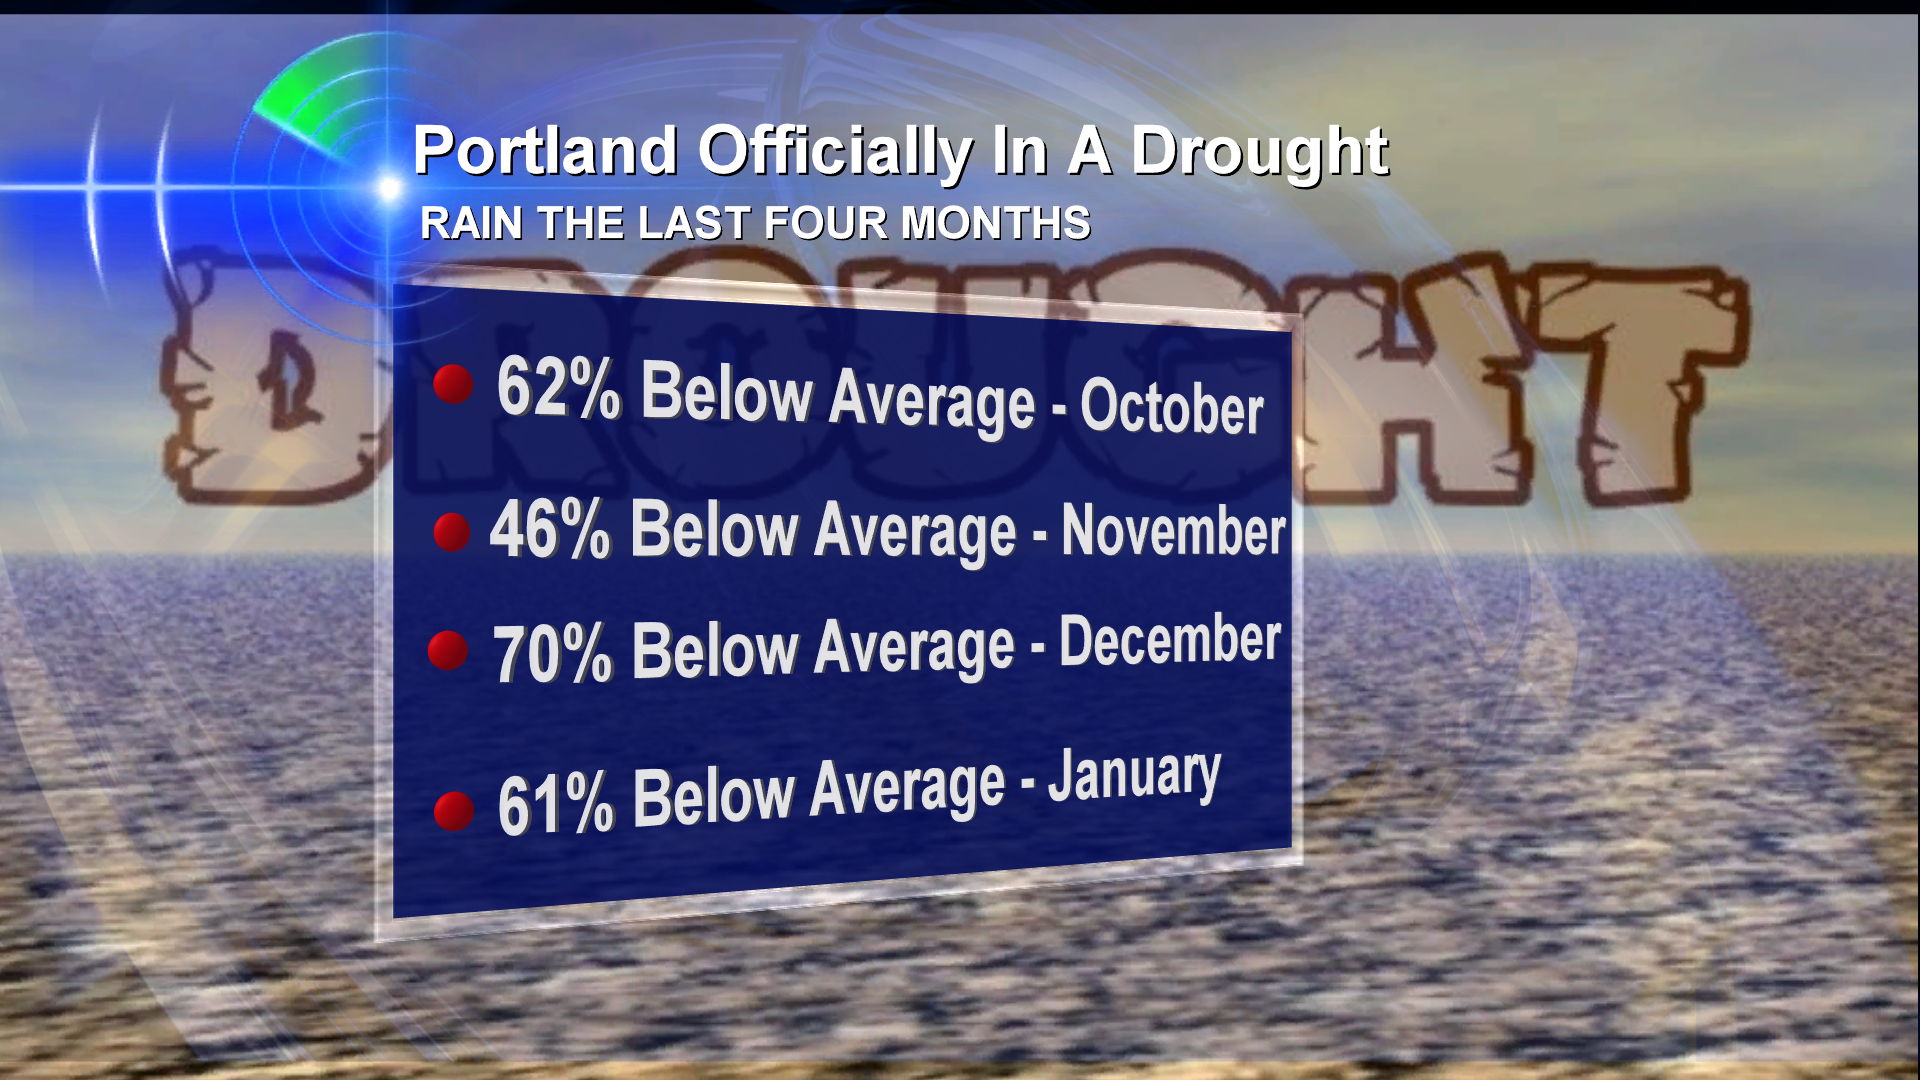 Oregon & Washington Drought: It's For Real This Winter